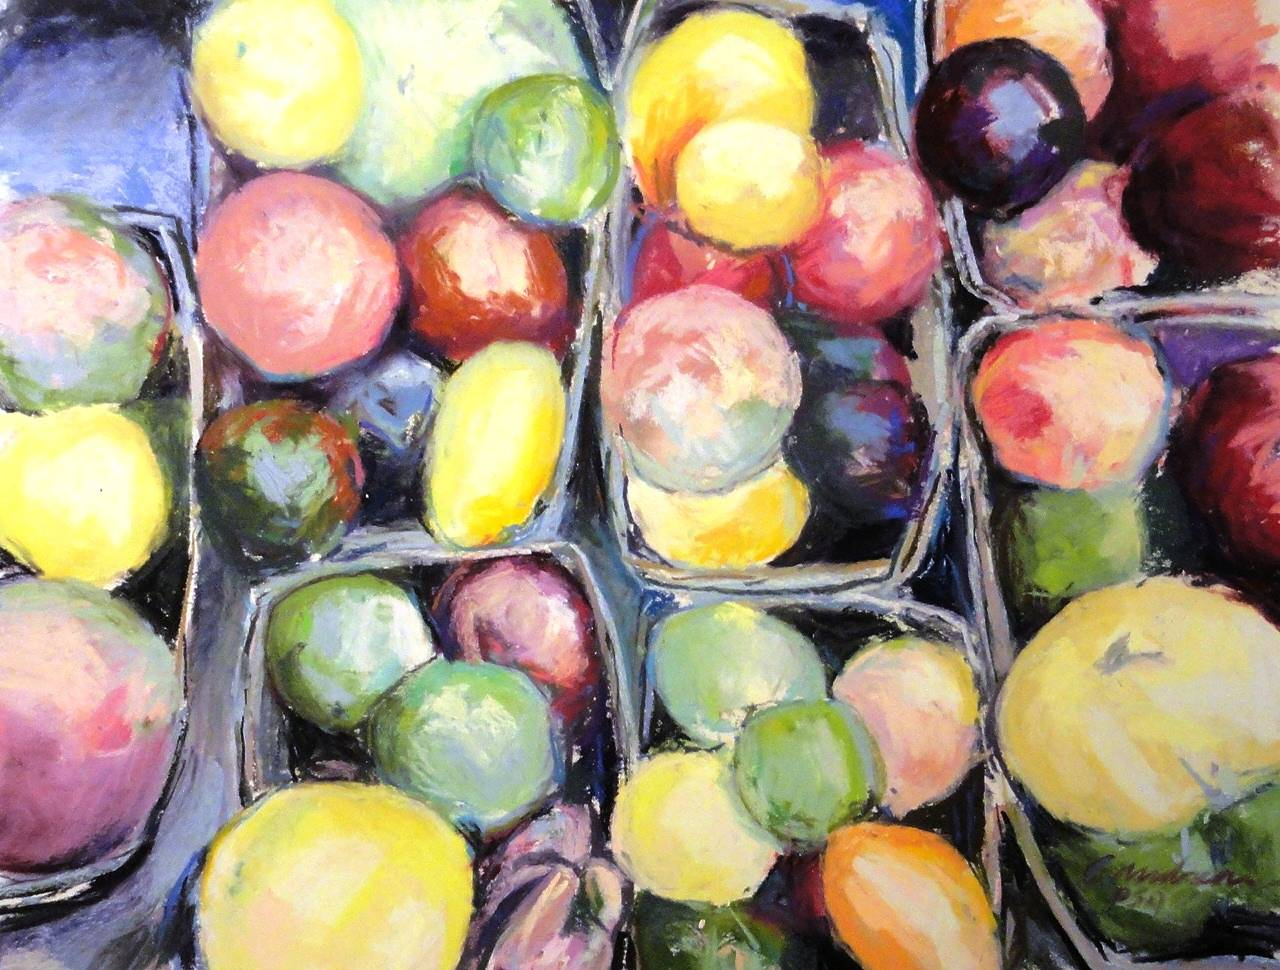 Heirloom Tomatoes by Michael  Gaudreau